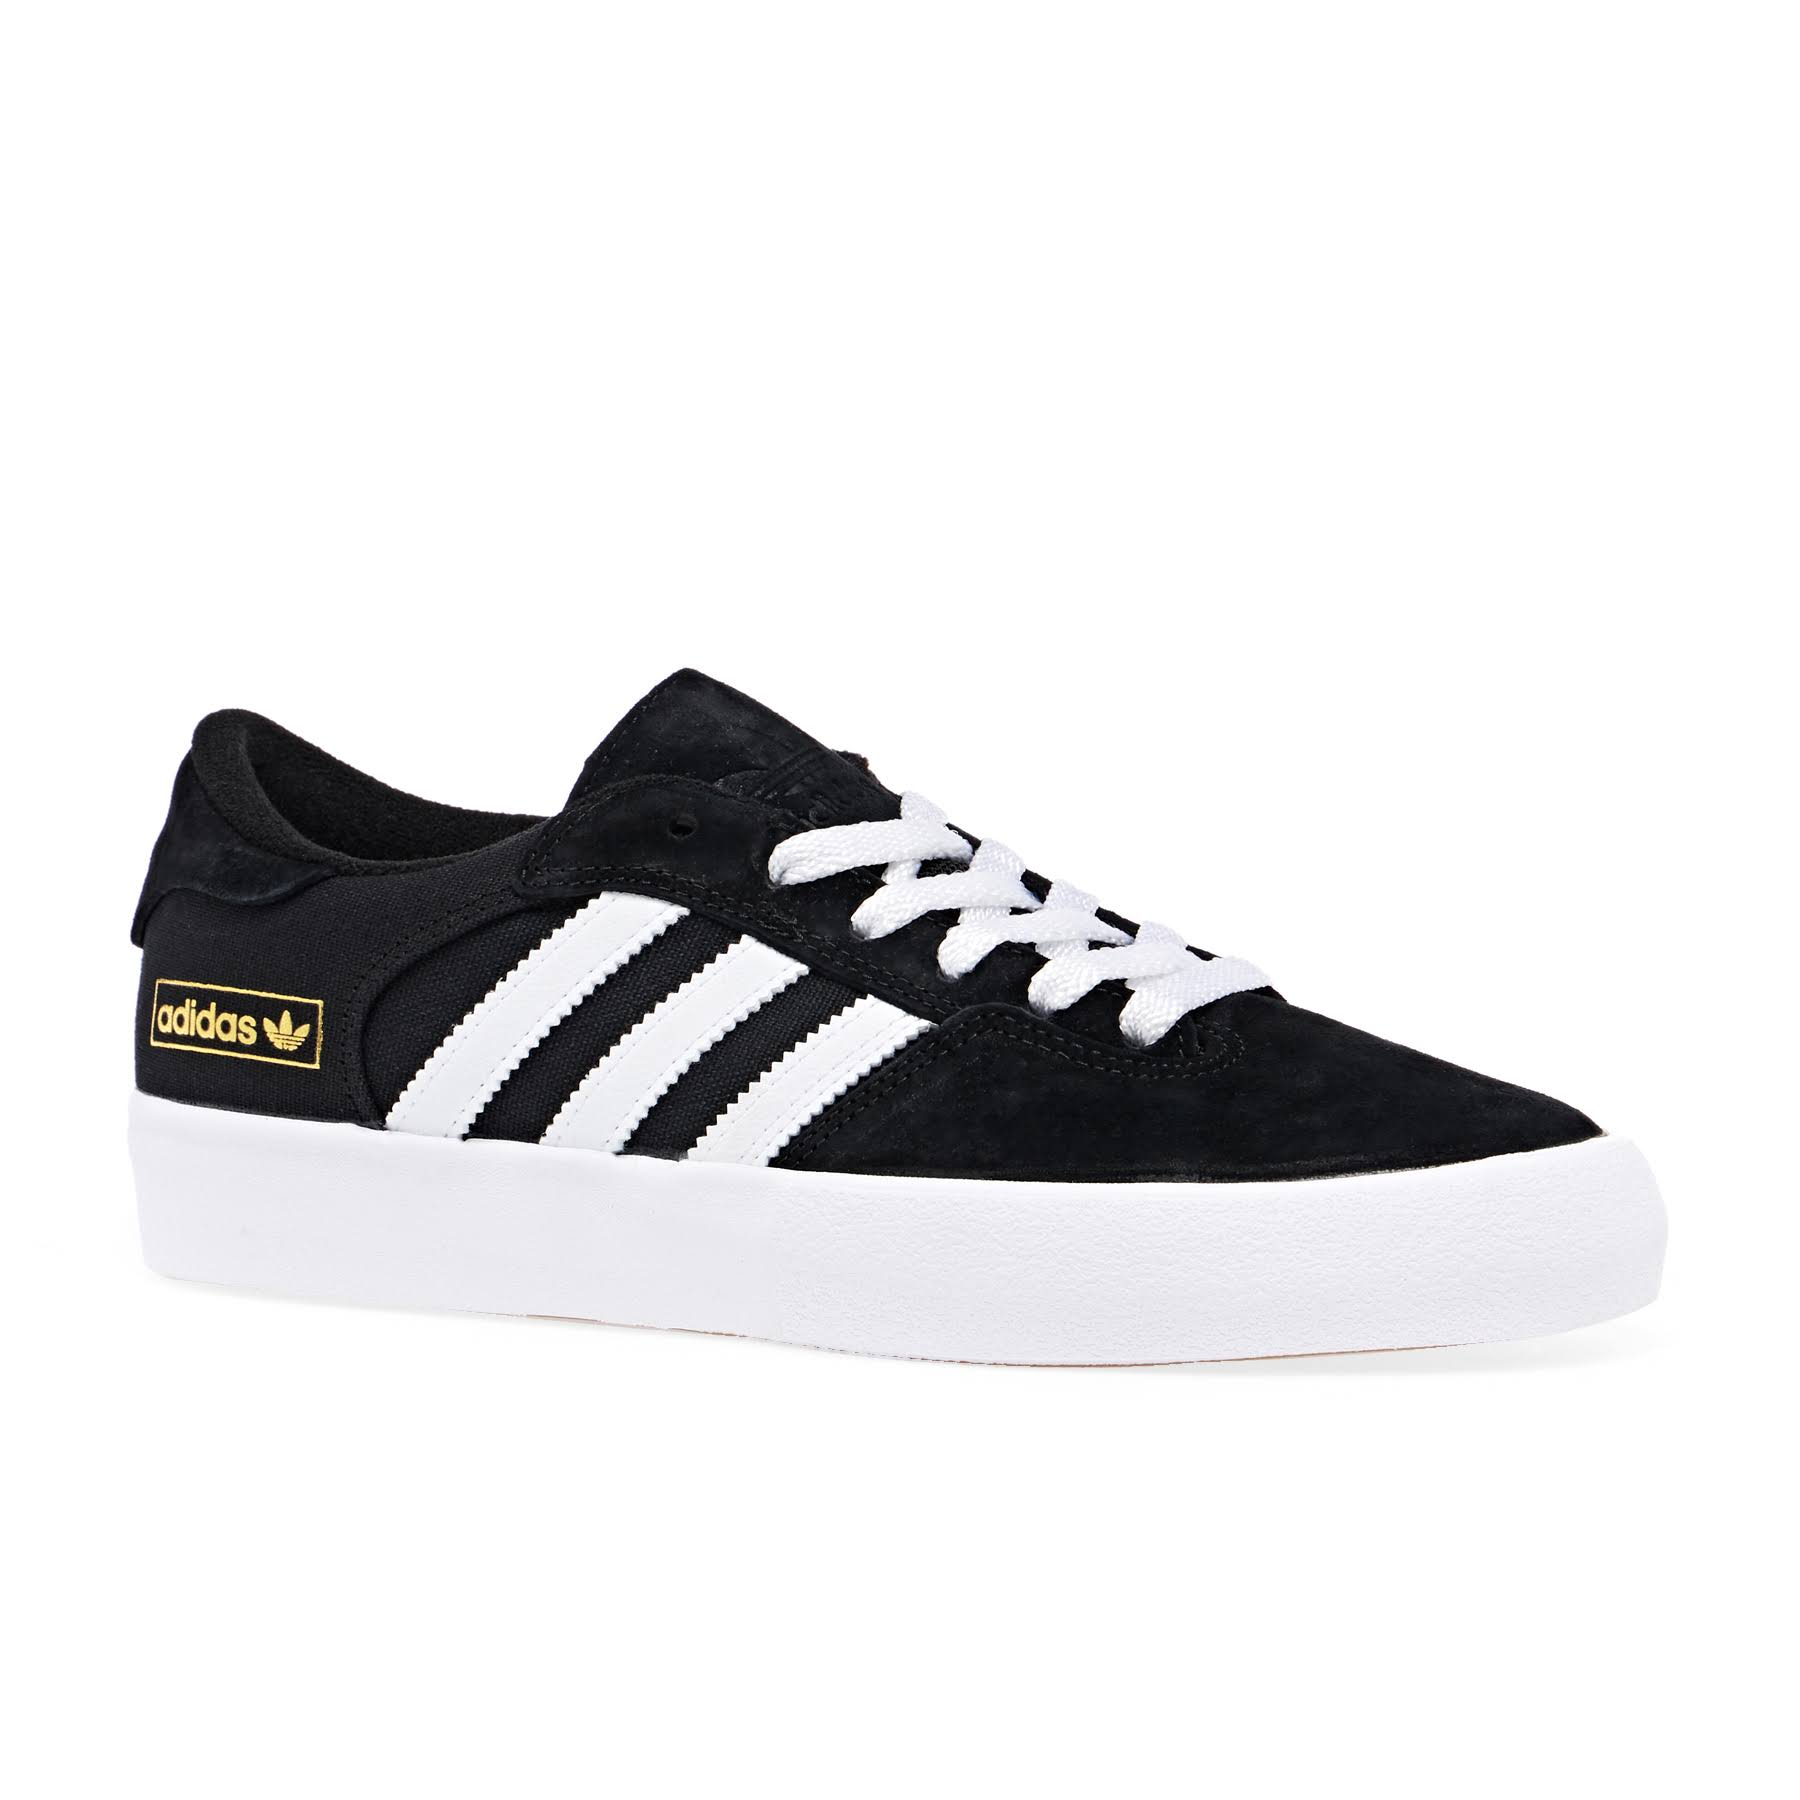 Adidas Matchbreak Super Shoes - Core Black White Gold